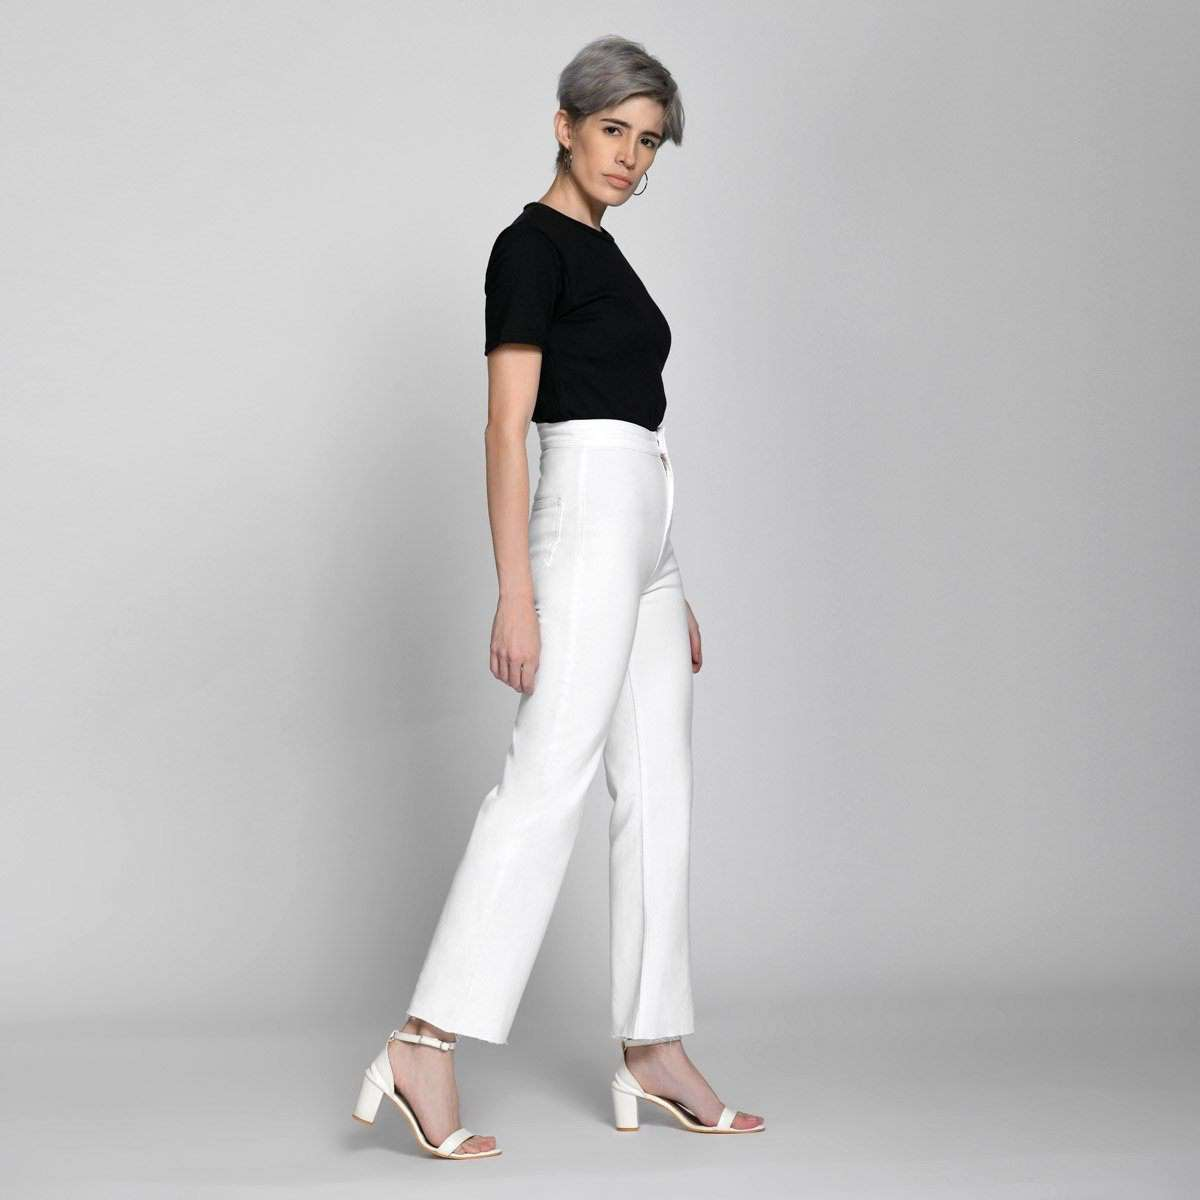 Ankle Crop Wide Leg White High Waist Jeans by Madish